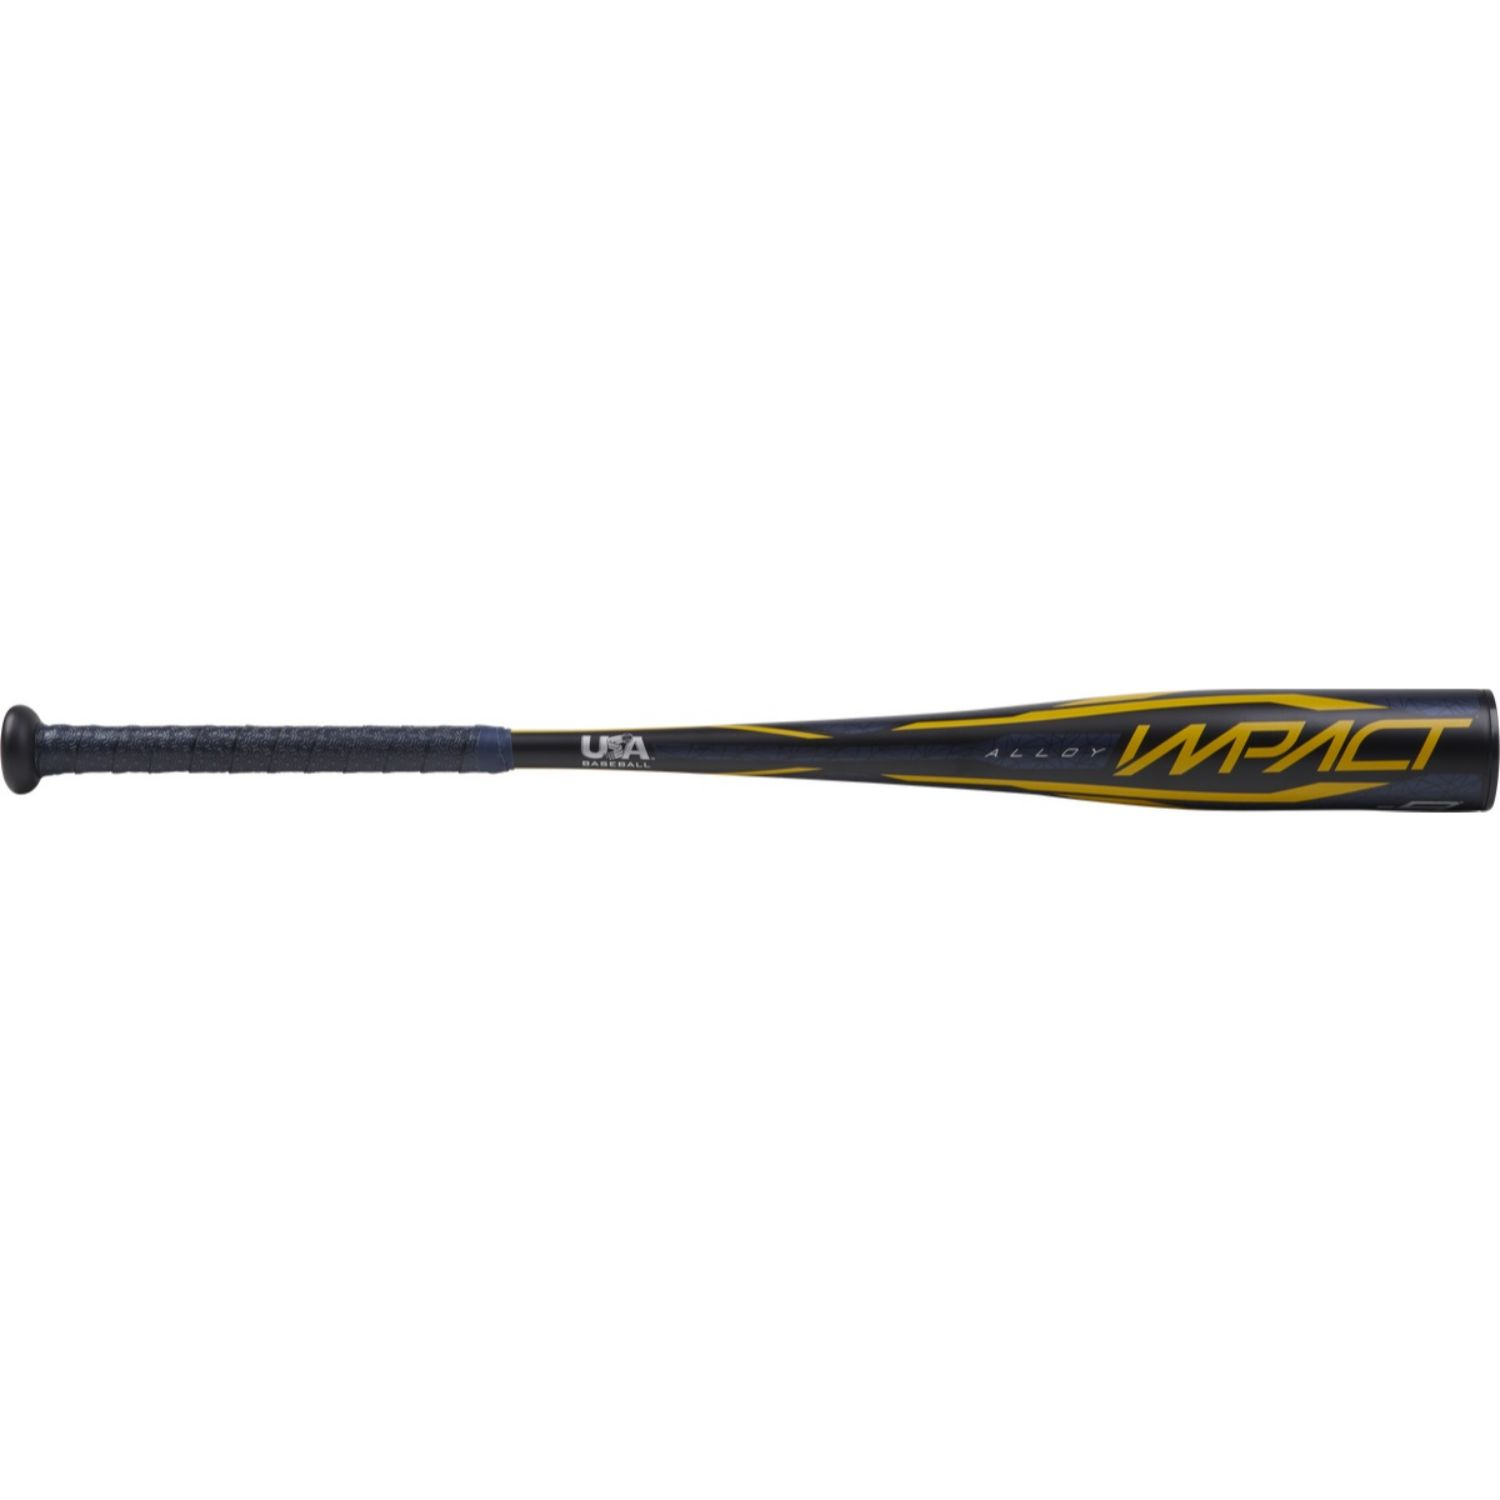 Rawlings 2020 28 in 19 oz Youth Impact Youth USA Bat -9